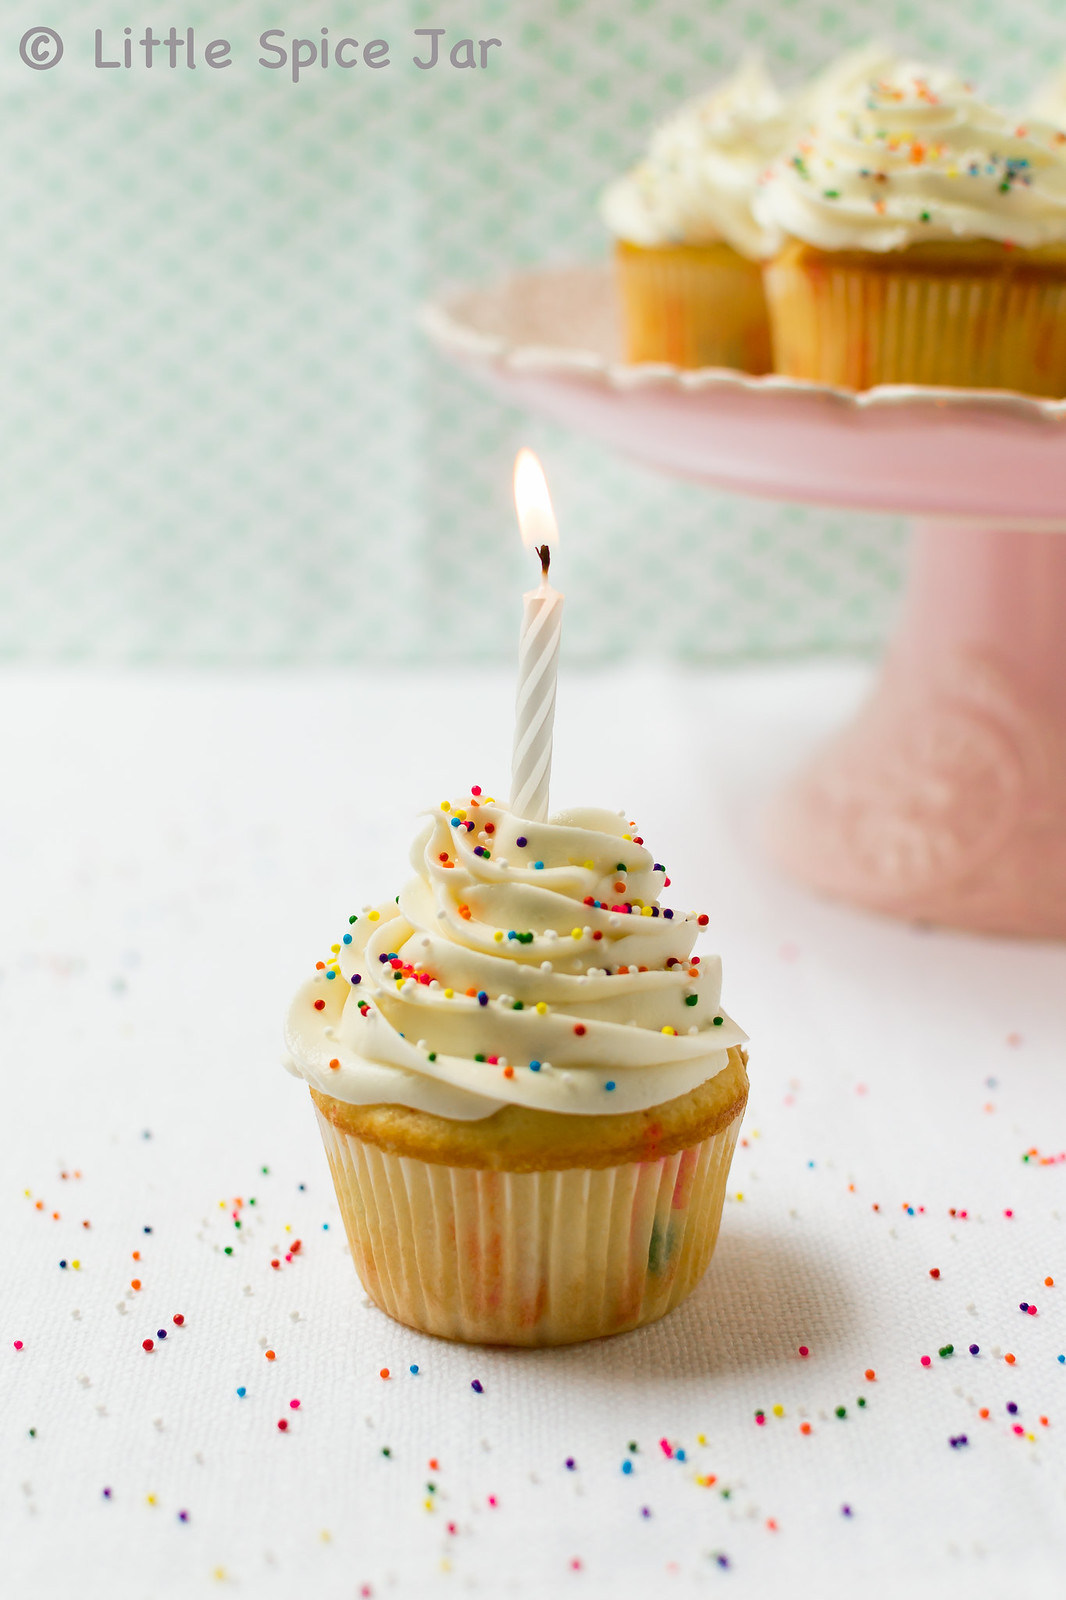 Confetti Funfetti Cupcakes - an EASY scratch recipe that's so delicious that you'll never buy the cake mix again! #confetticupcakes #cupcakes #funfetticupcakes | Littlespicejar.com